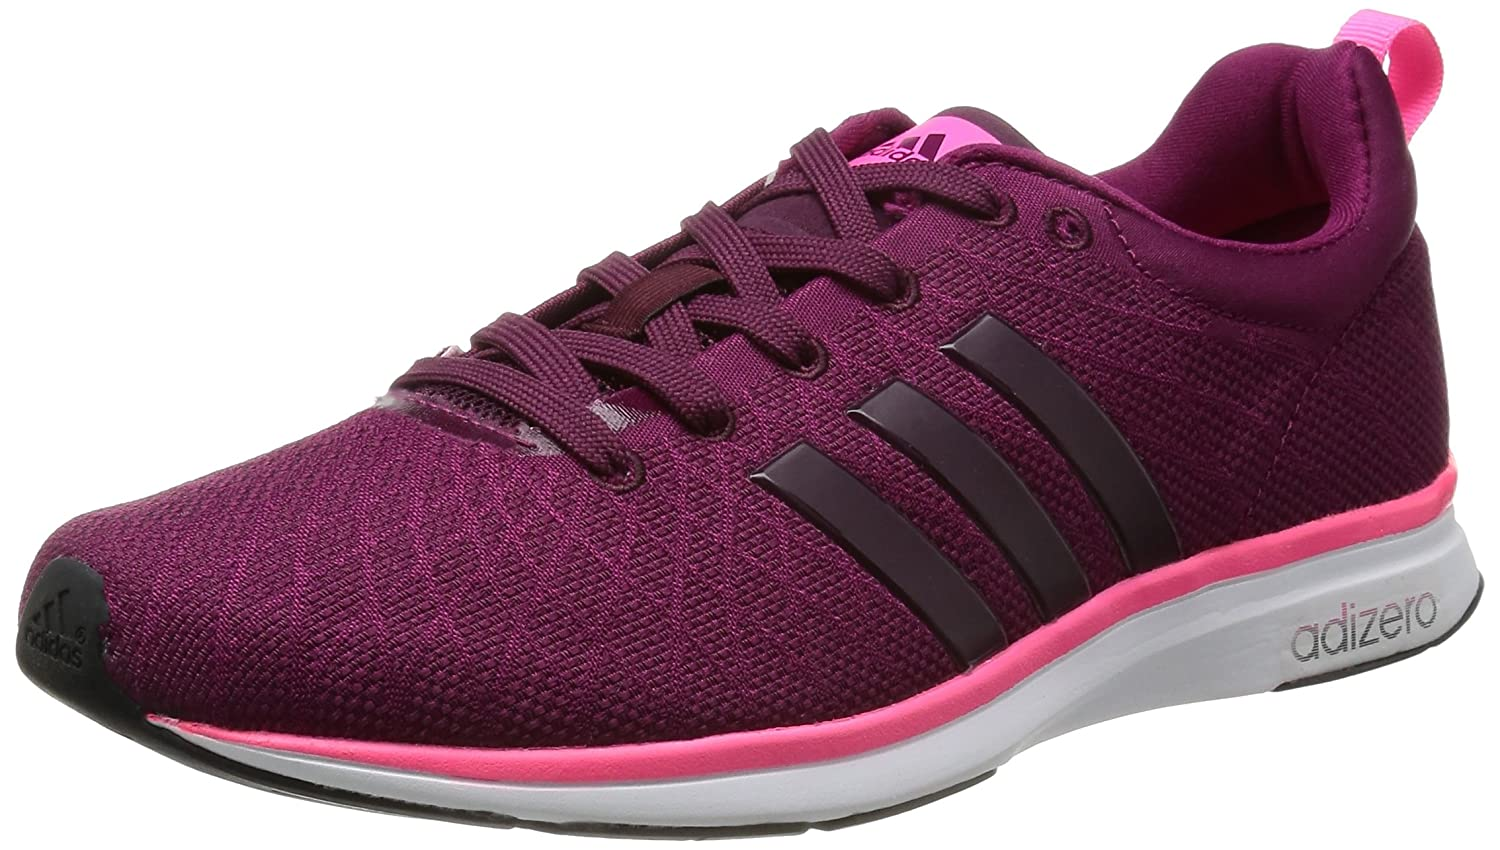 best loved 9474d 3661d Adidas Adizero Feather 4 W, Chaussures de running femme - Rose (Tribe Berry  F14Tribe Berry F14Neon Pink), 39 13 EU Amazon.fr Chaussures et Sacs